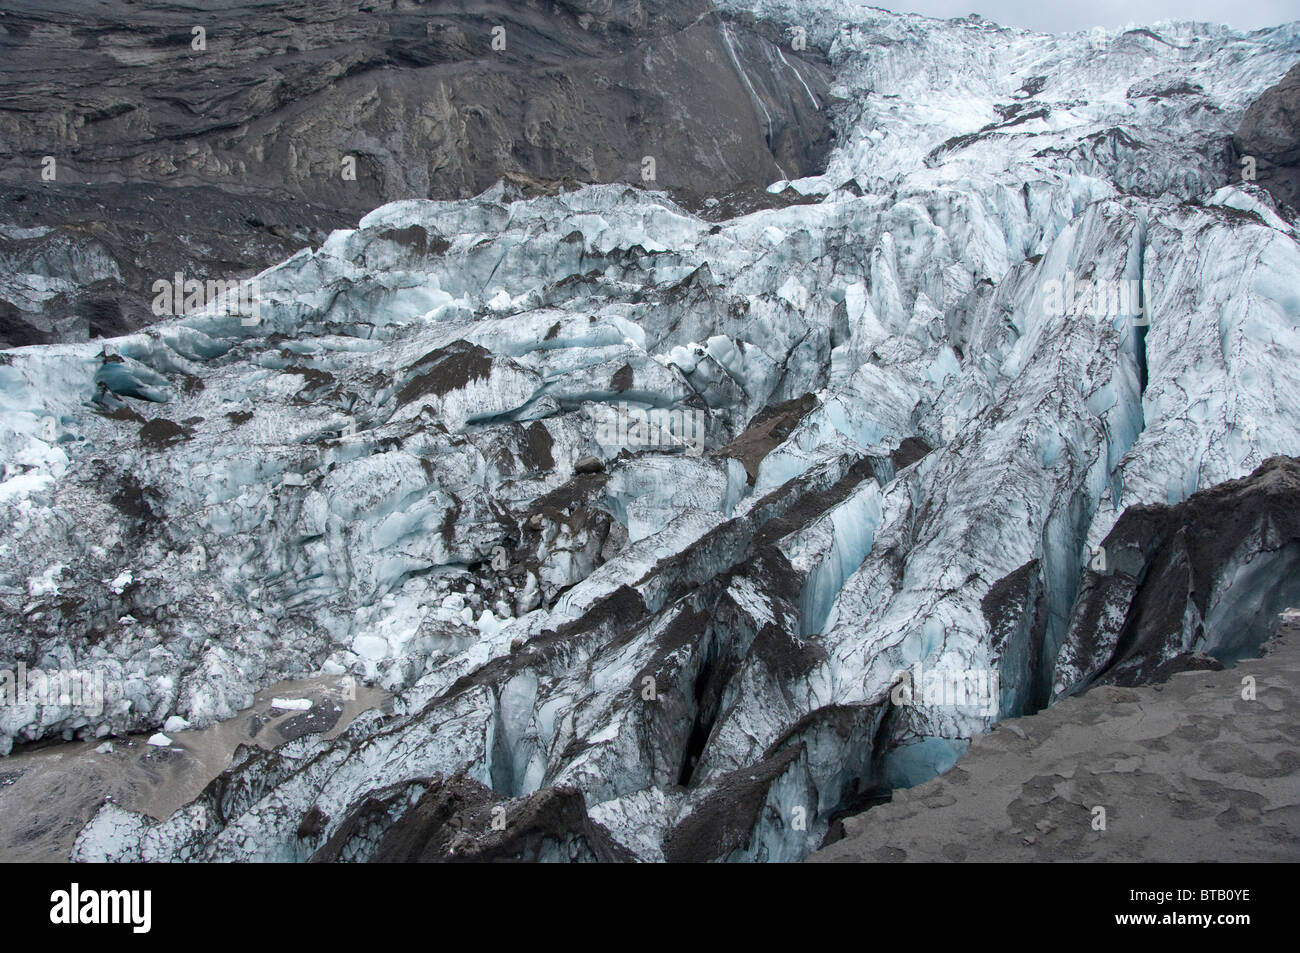 Iceland, Porsmork Park, Gigjokull glacier after the 2010 spring eruption of Eyjafjallajokull volcano. - Stock Image